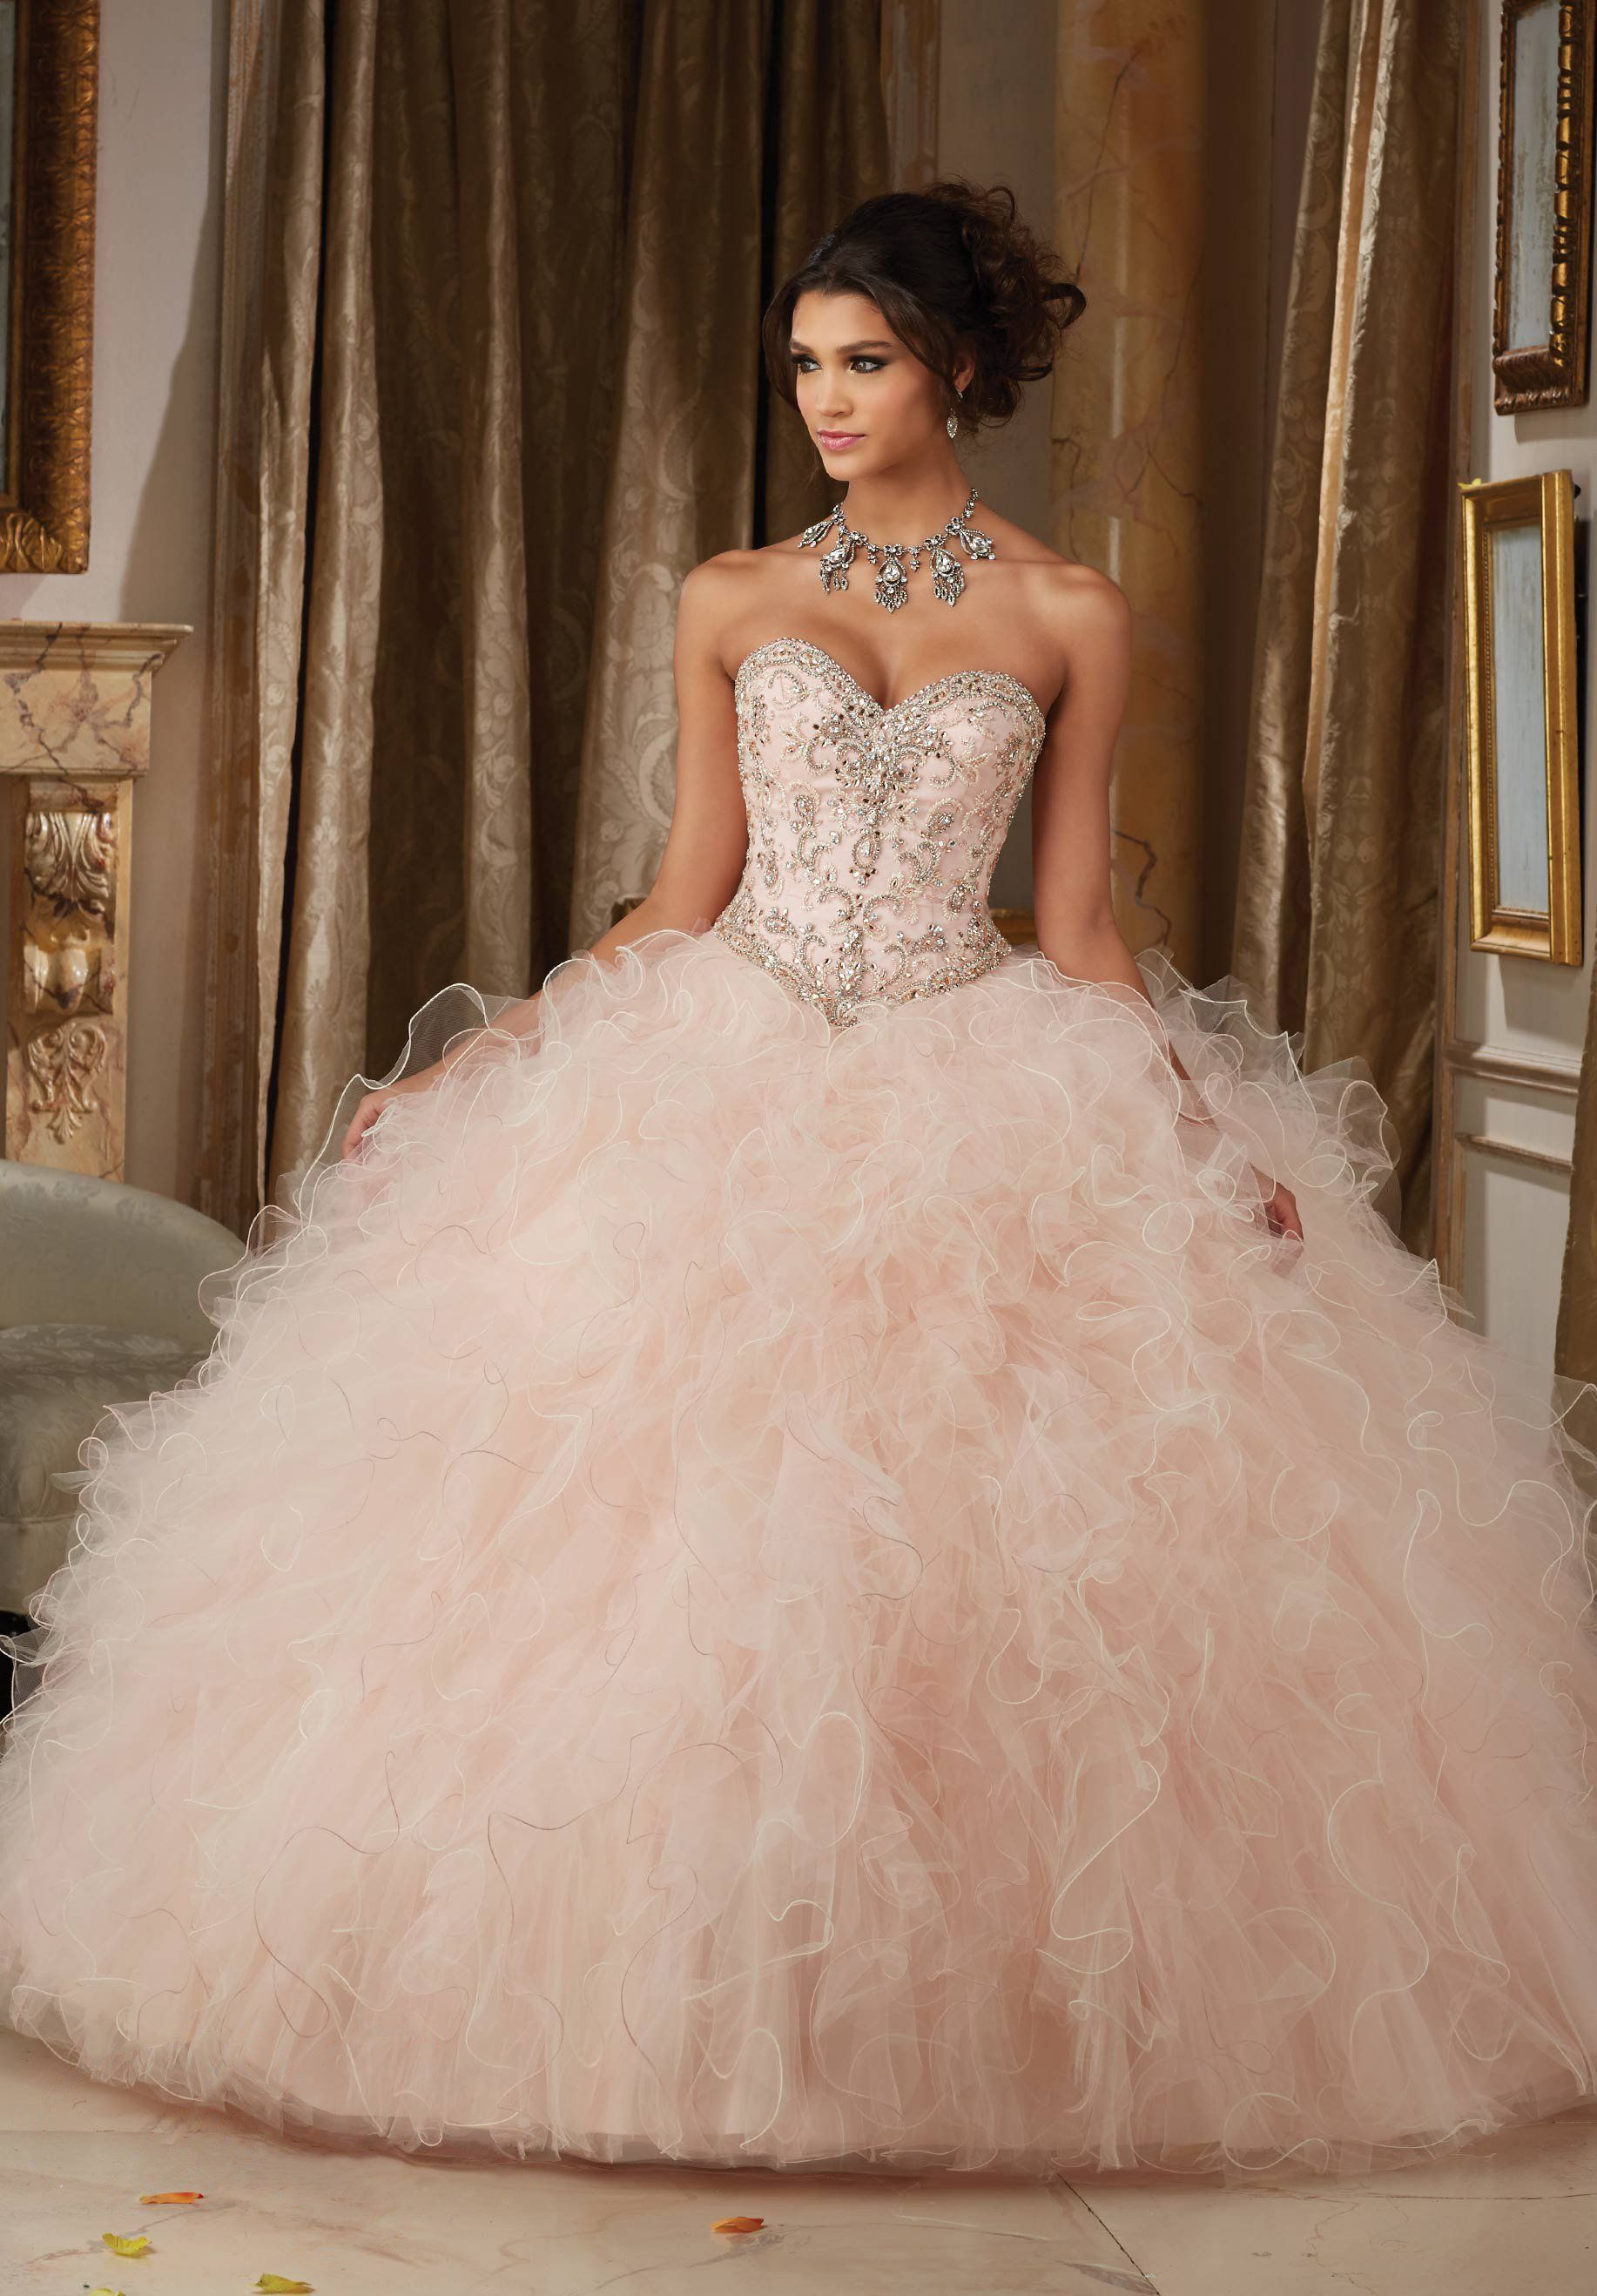 Vizcaya By Mori Lee 89113 Crystal Ornate Sweetheart Bodice Ballgown In 2021 Quinceanera Dresses Pink Quinceanera Dresses Gold Mori Lee Quinceanera Dresses [ 2636 x 1834 Pixel ]